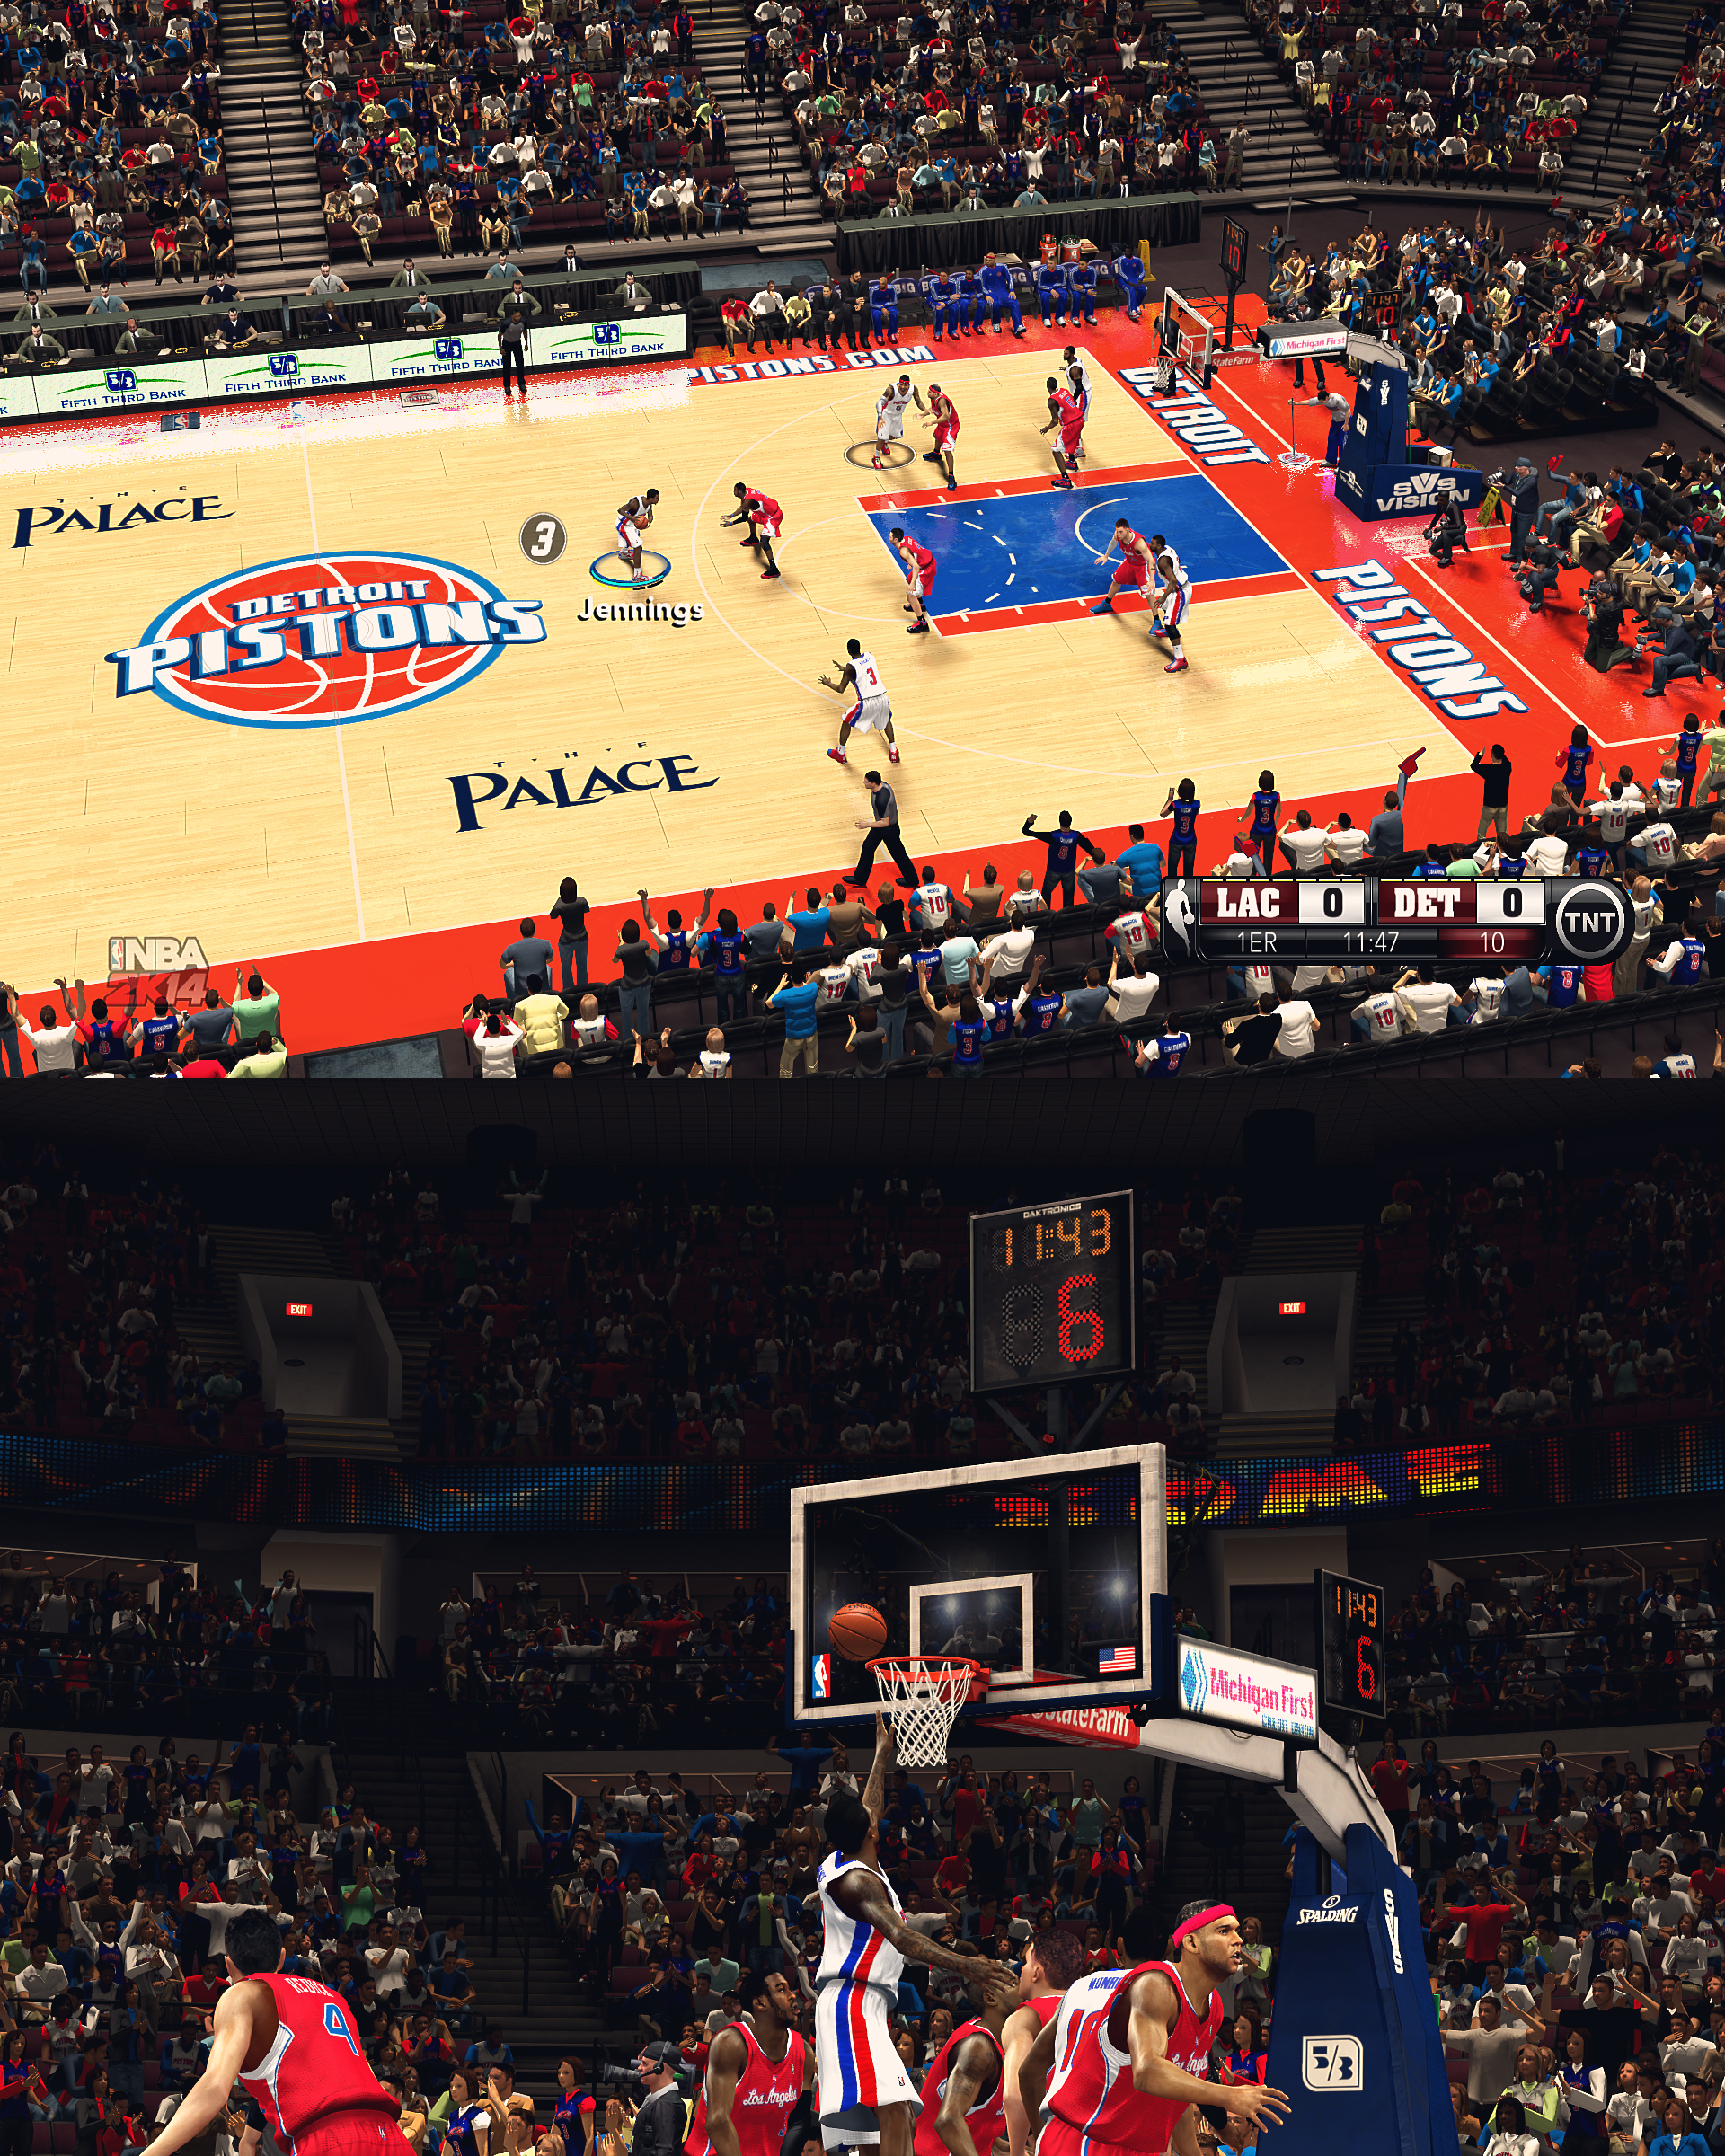 Detroit Pistons HD Arena by stoeck